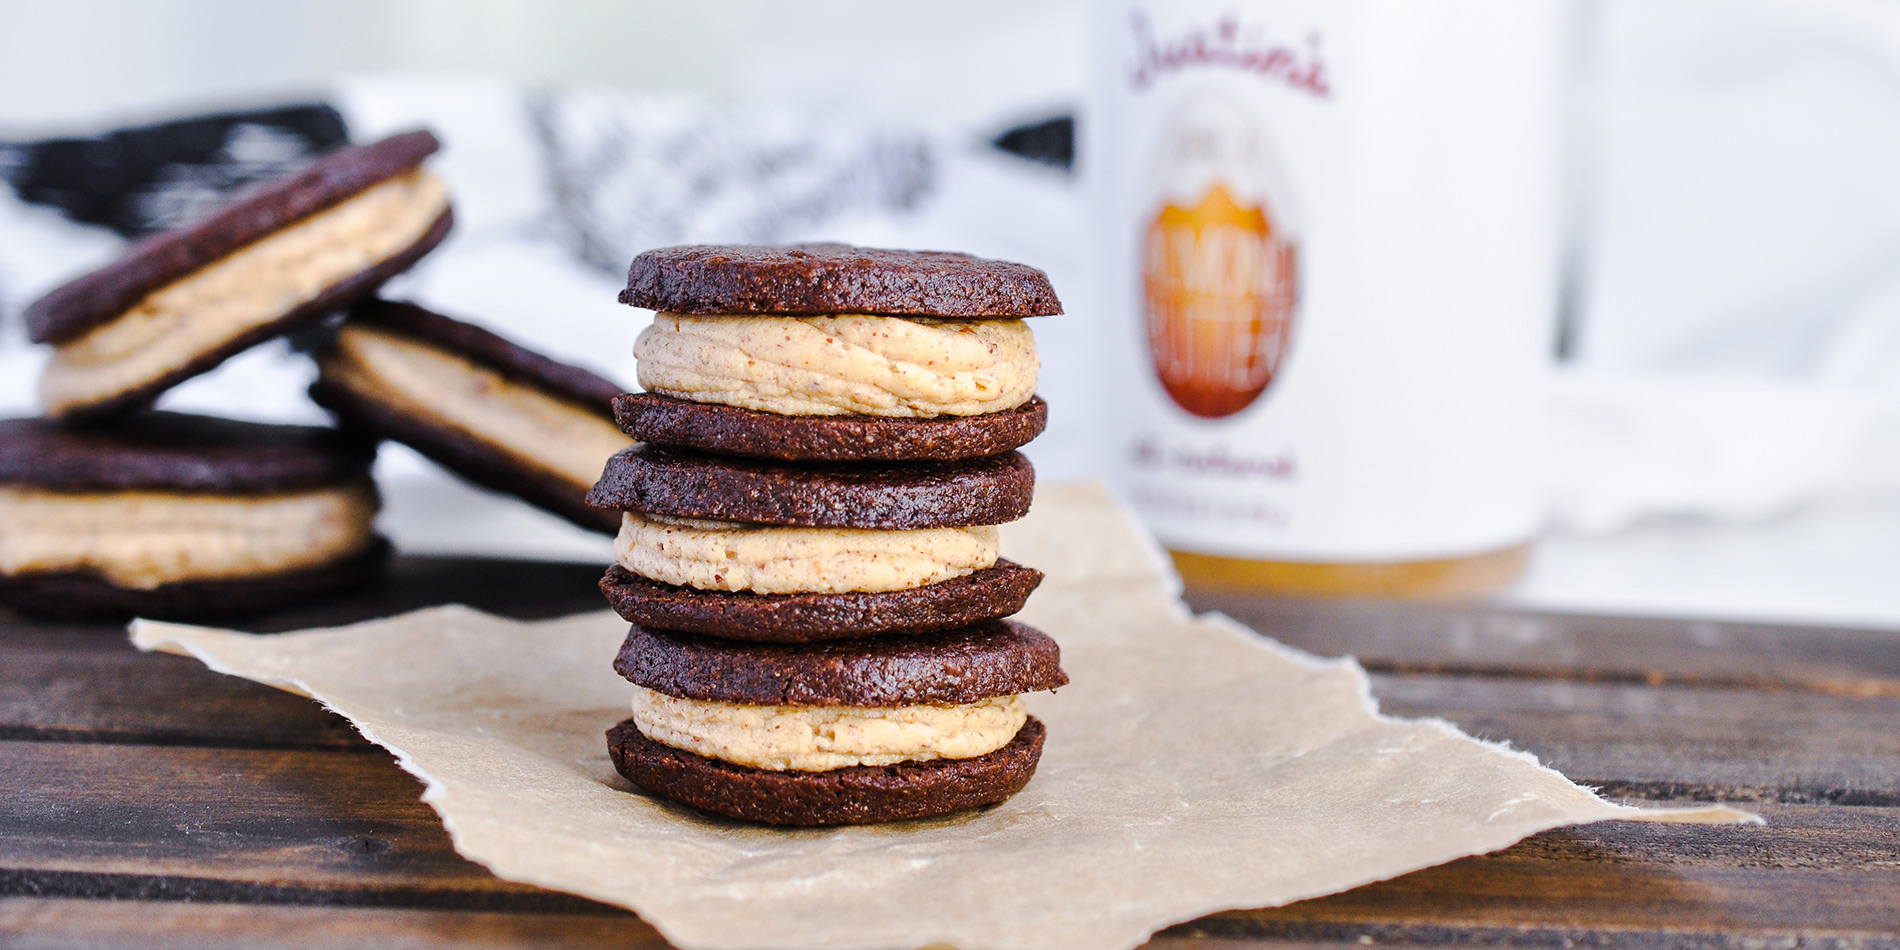 Vanilla Almond Crème Filled Sandwich Cookies stacked on parchment paper with cookies and peanut butter jar in background